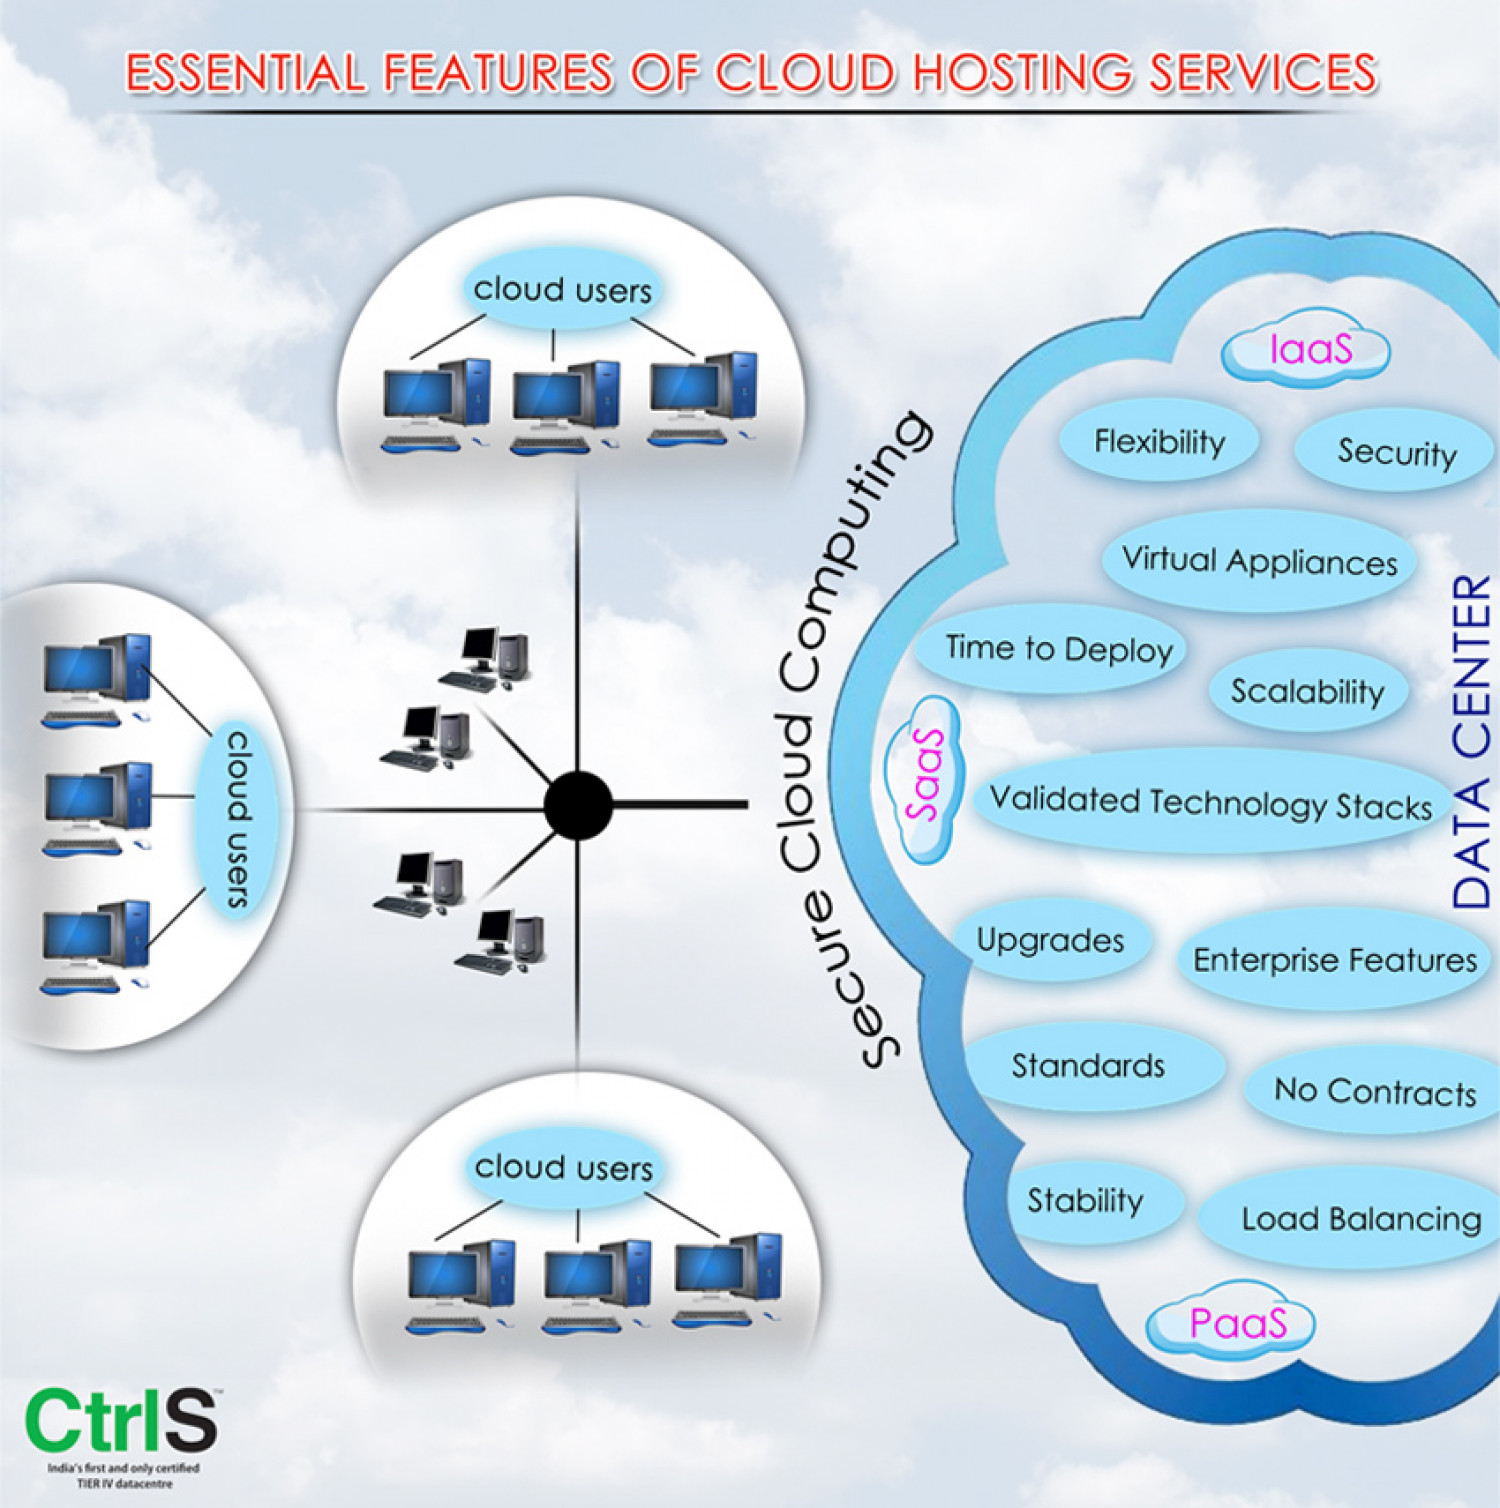 Essential Features of Cloud Hosting Services Infographic